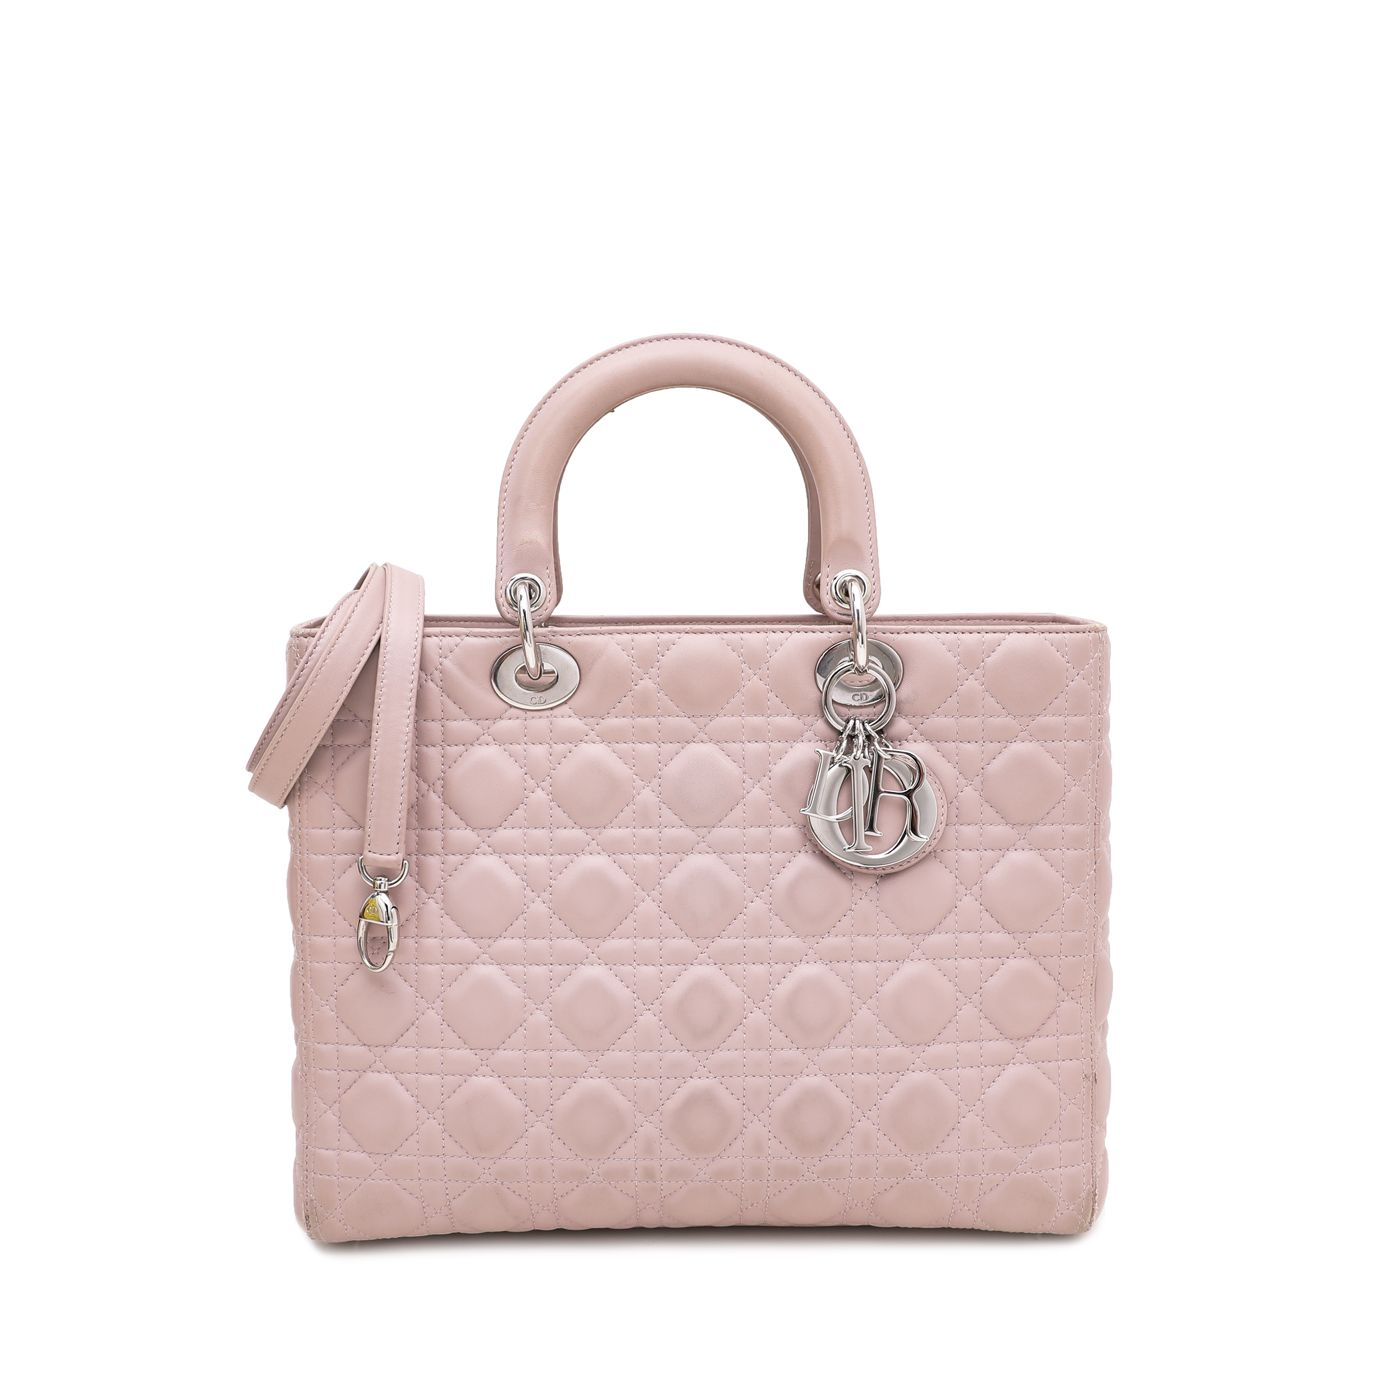 Christian Dior Nude Pink Lady Dior Large Bag